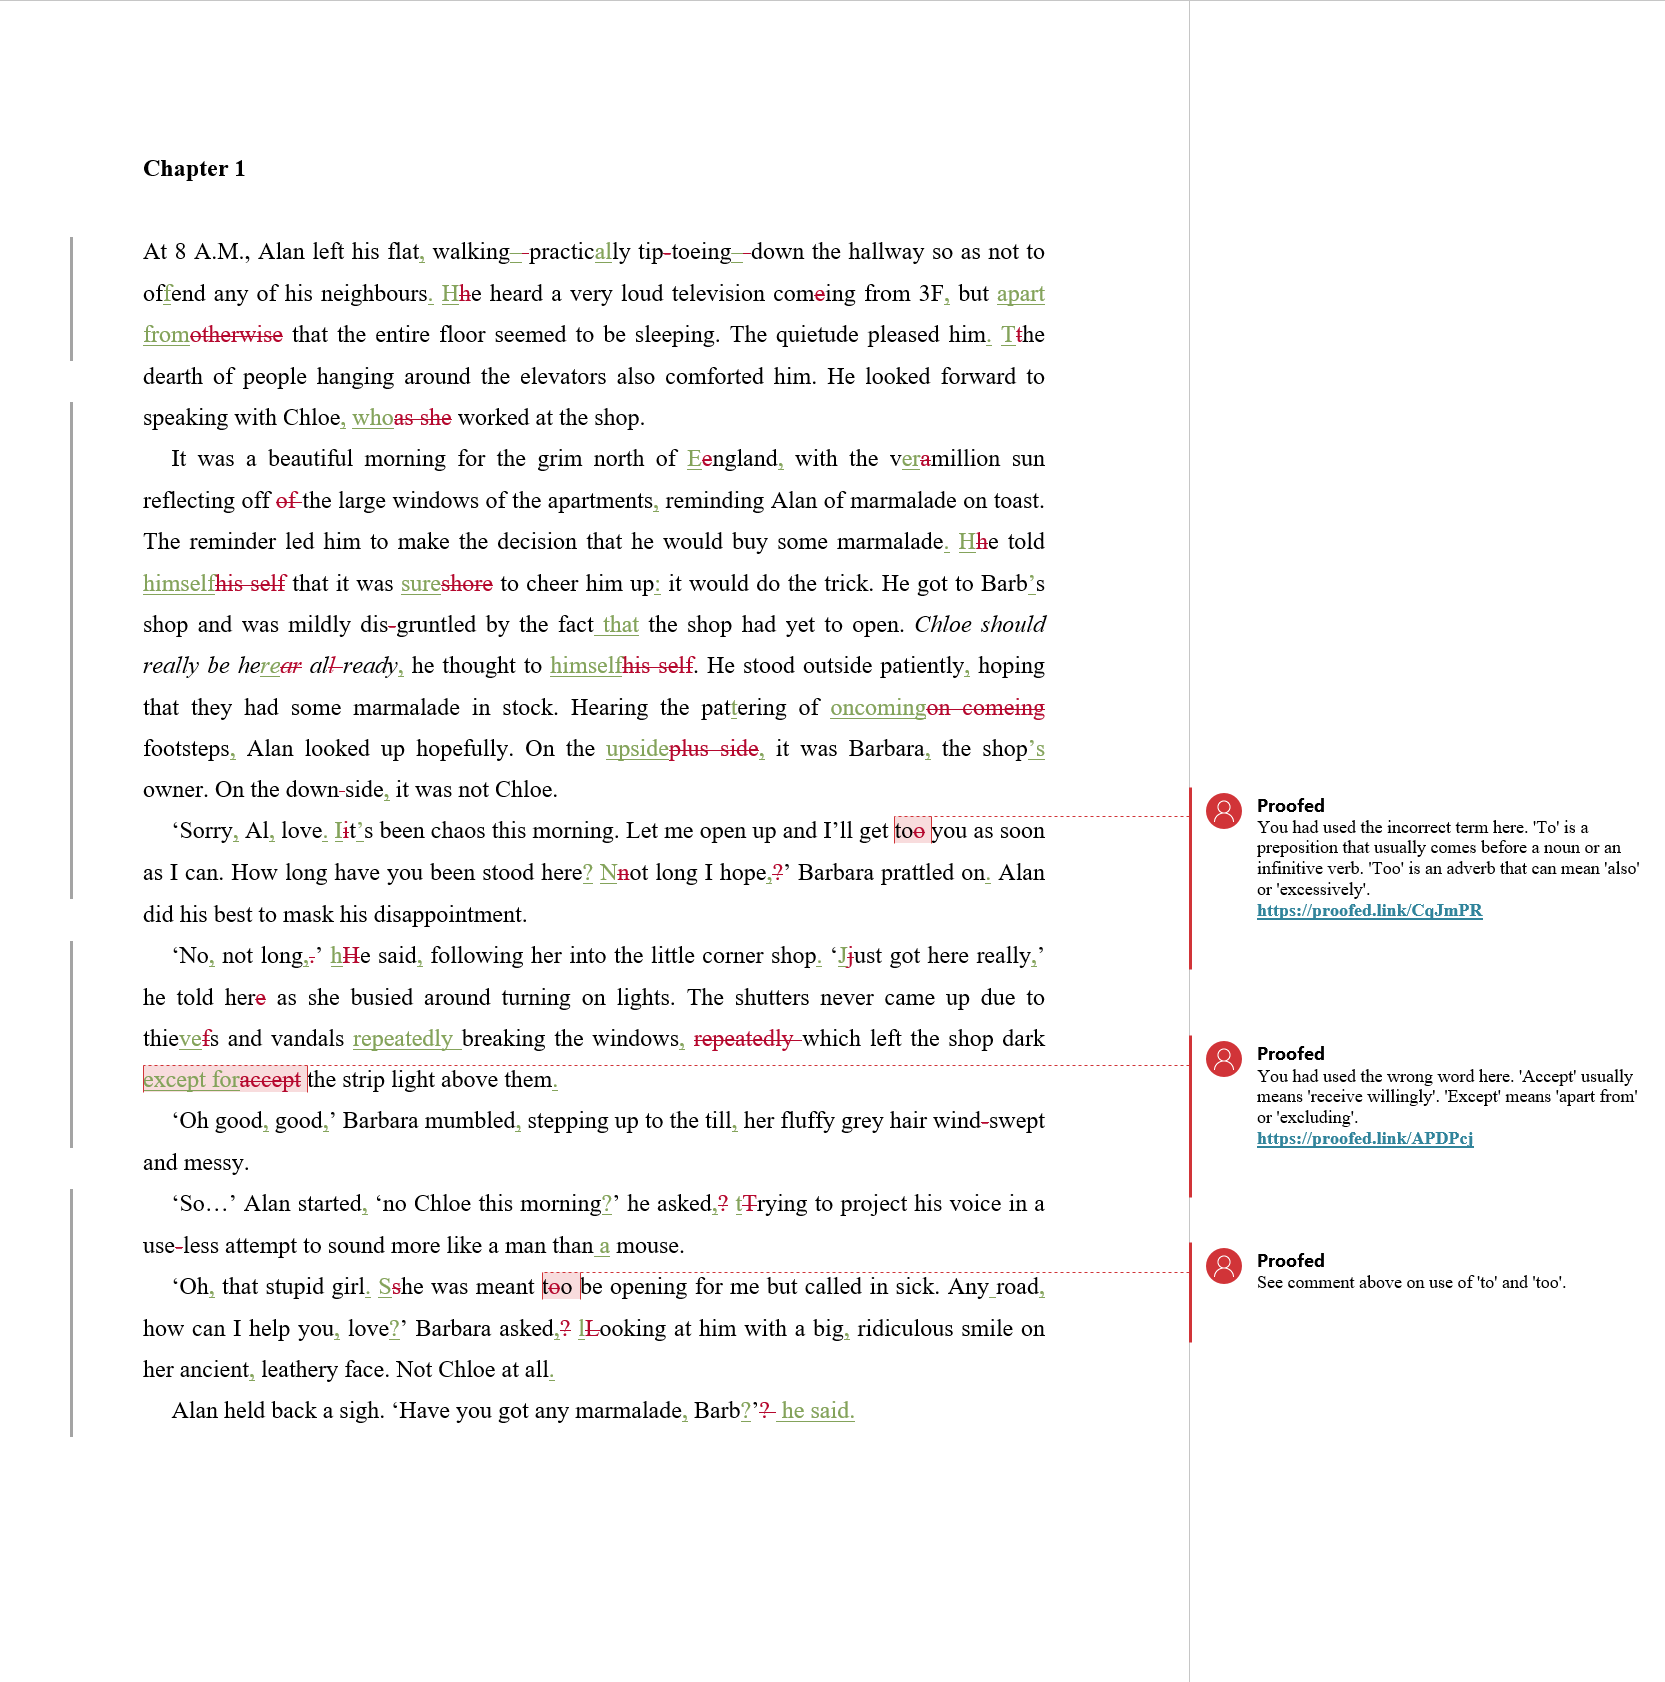 Book Proofreading Example (After Editing)